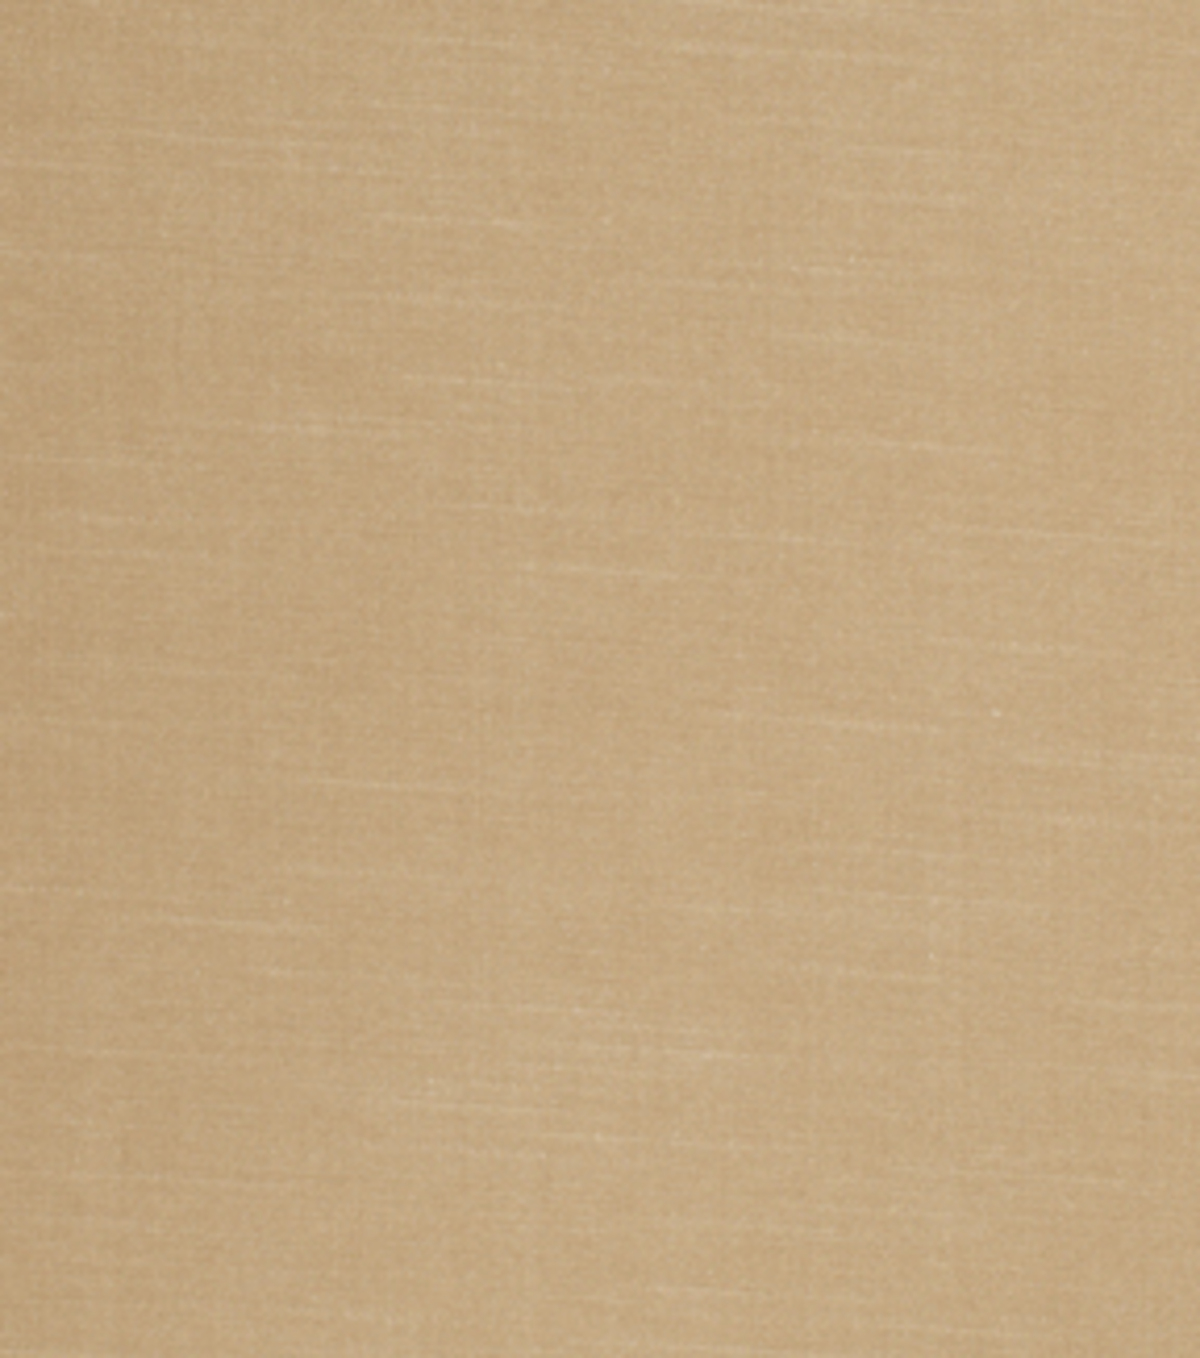 Home Decor 8\u0022x8\u0022 Fabric Swatch-Richloom Studio Silky Wheat